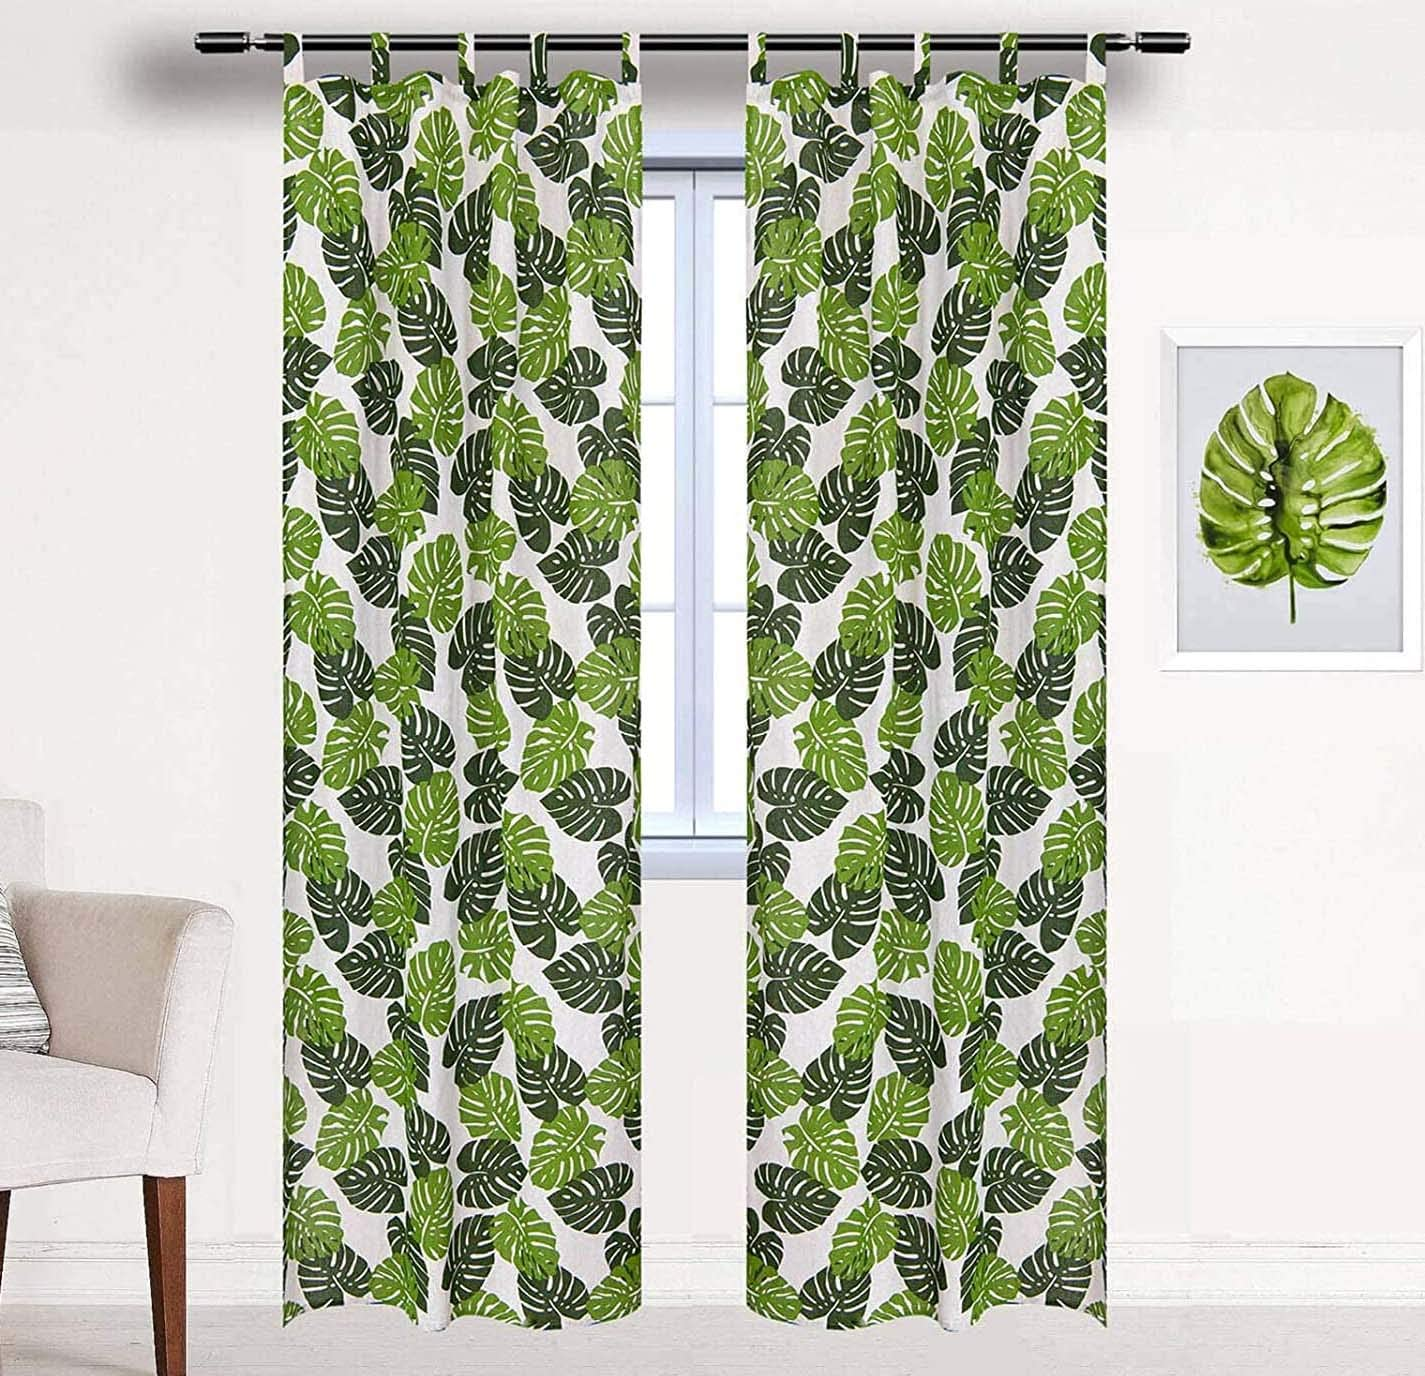 BROSHAN Plant Curtains for Bedroom 1 Panel,Tropical Palm Leaf Design Window Curtain Room Darkening for Modern Bedroom Drapes Green and White Tab Top